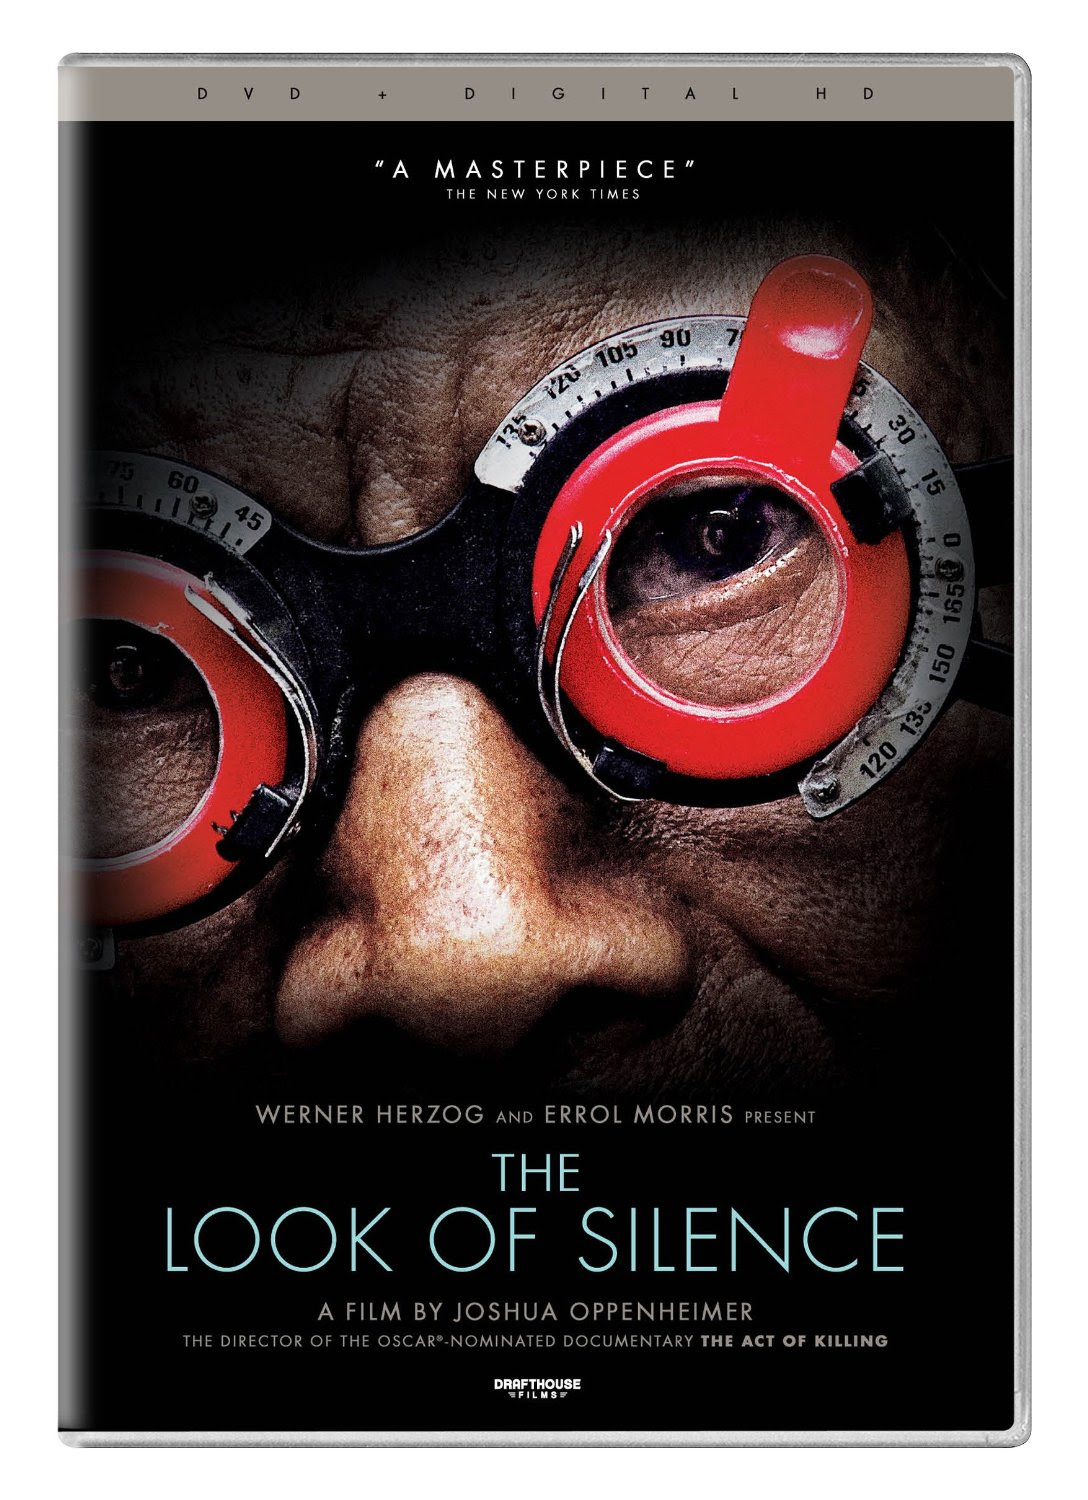 The Look of Silence.